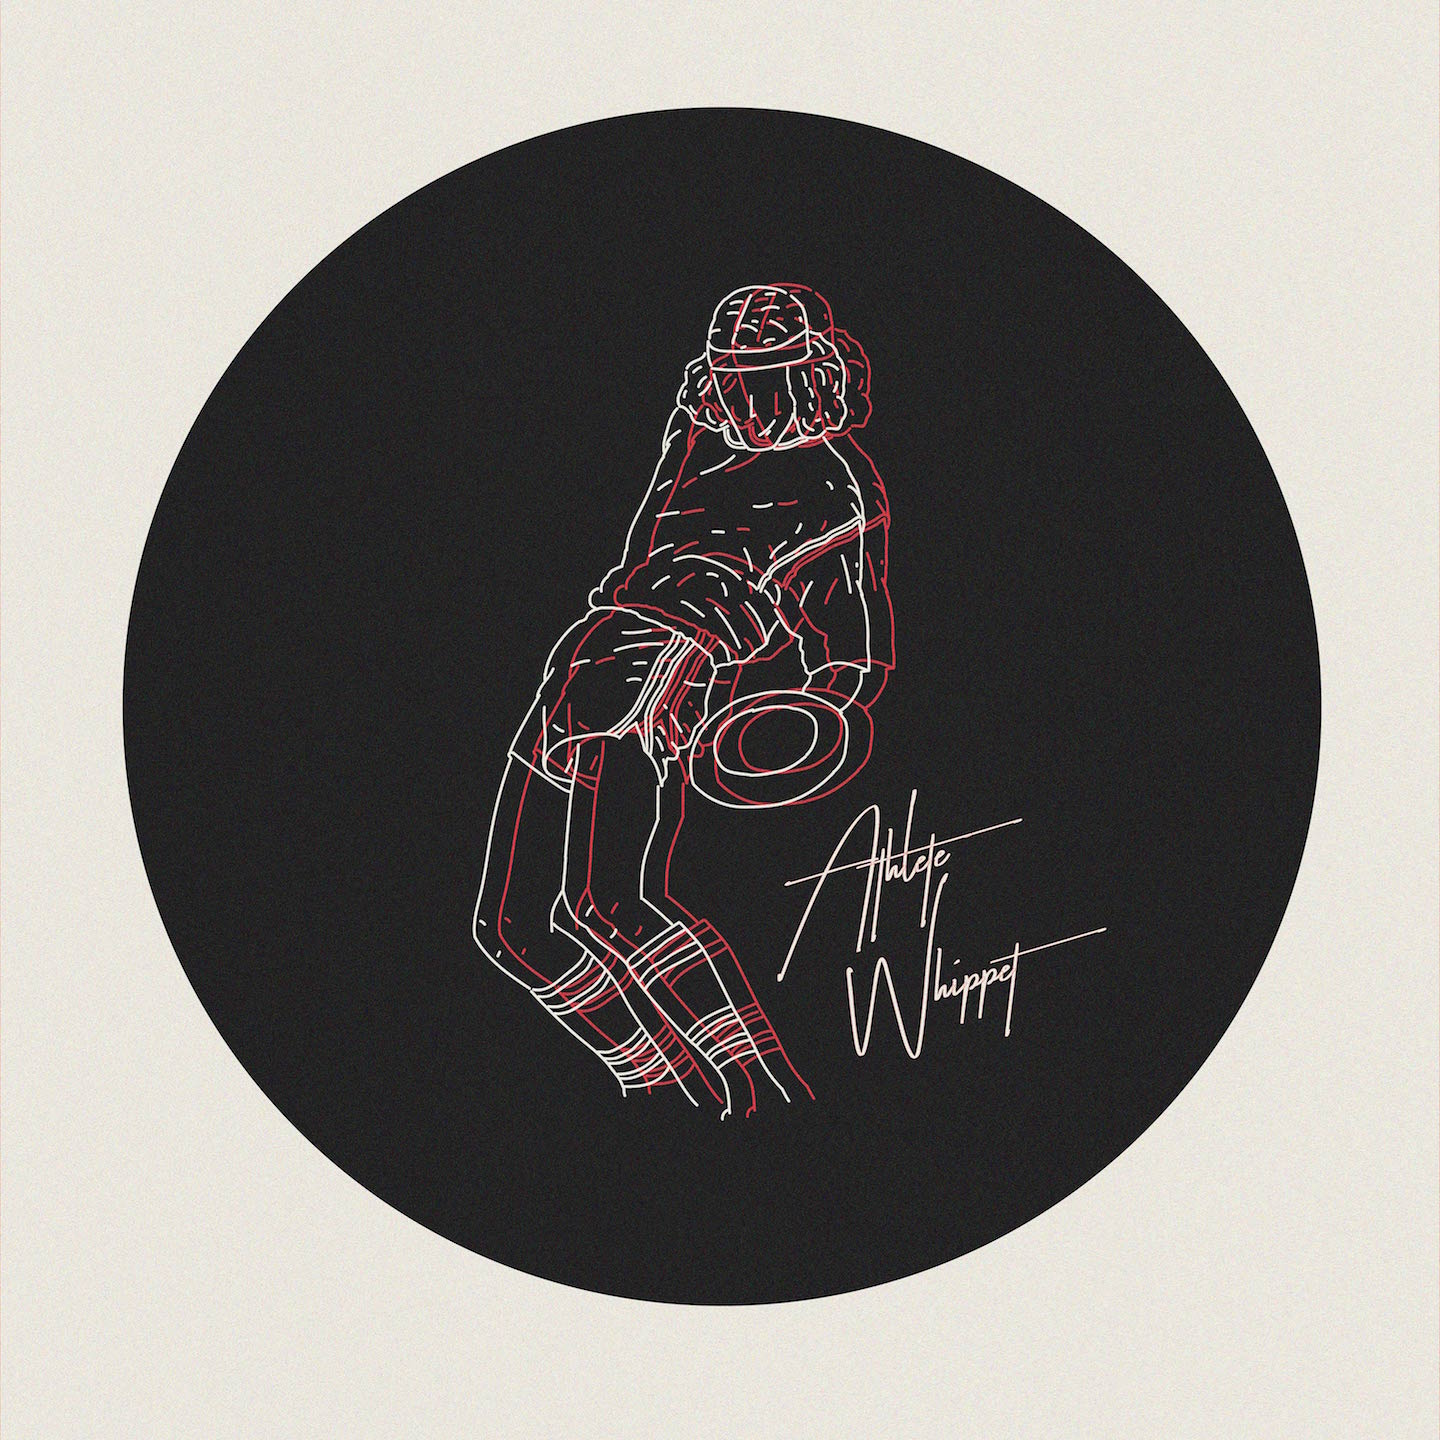 Athlete Whippet - Hands Only EP [Digital] - squareglass